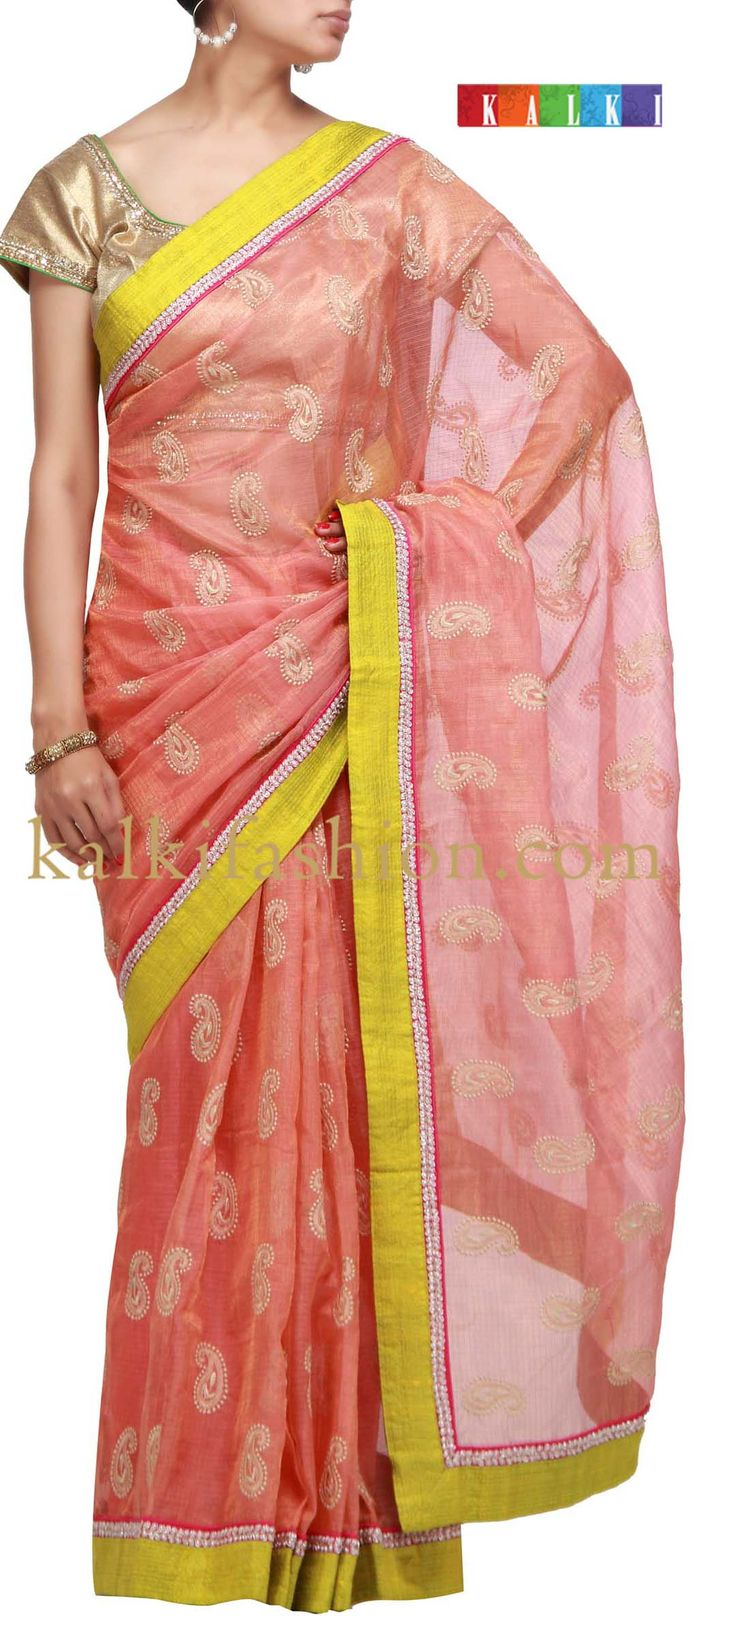 Buy it now http://www.kalkifashion.com/peach-saree-in-jute-silk-with-resham-embroidery.html Peach saree in jute silk with resham embroidery